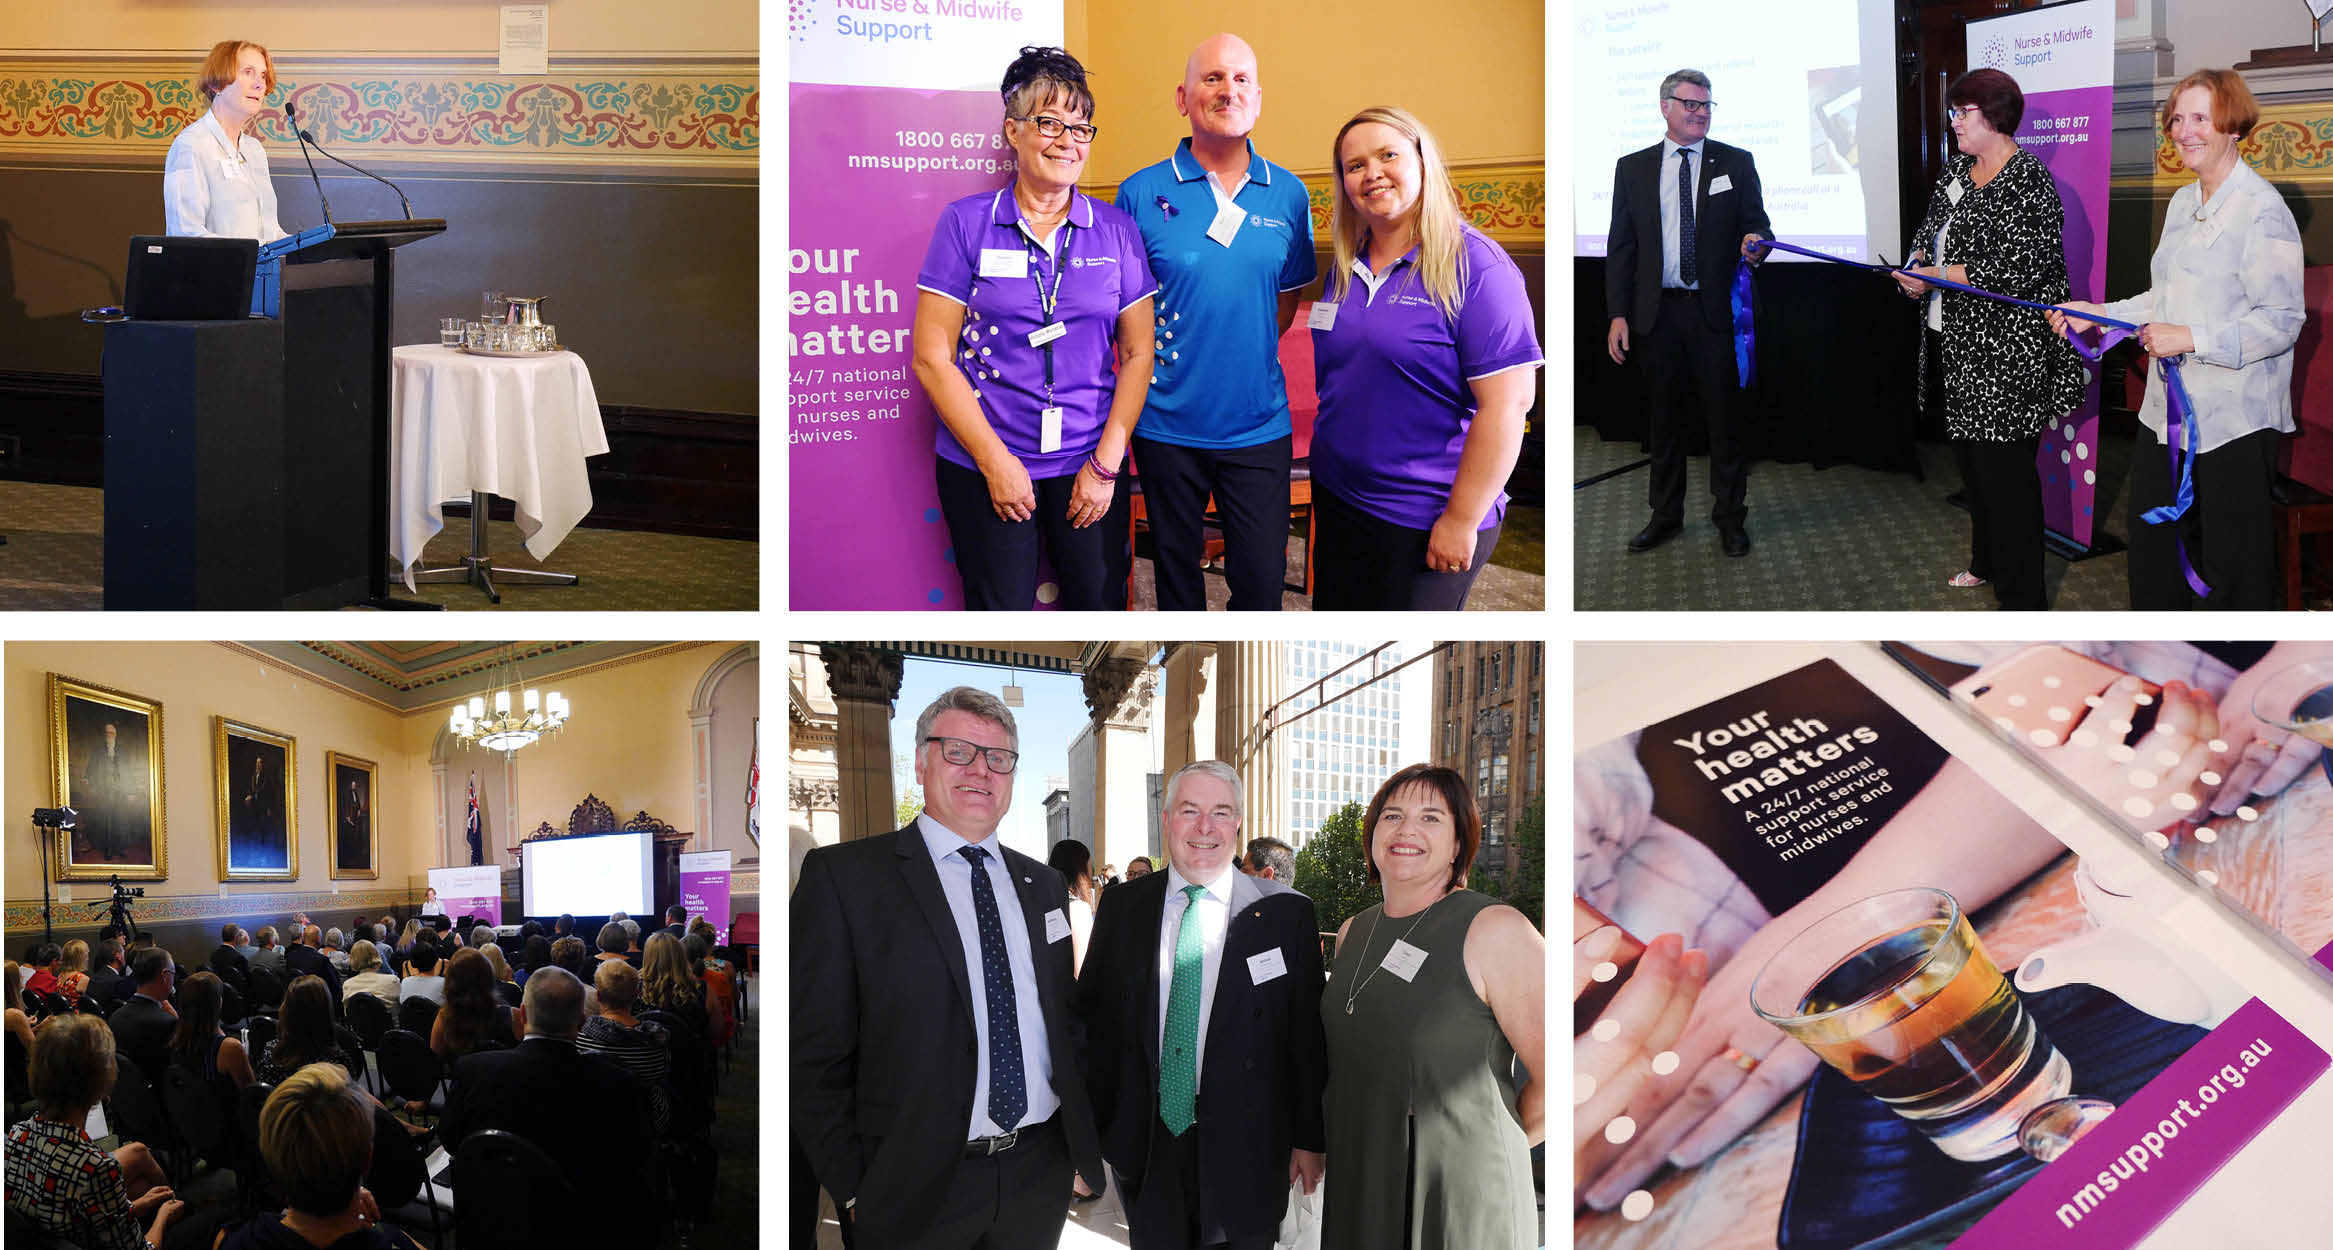 Various images of the Nurse & Midwife Support launch event